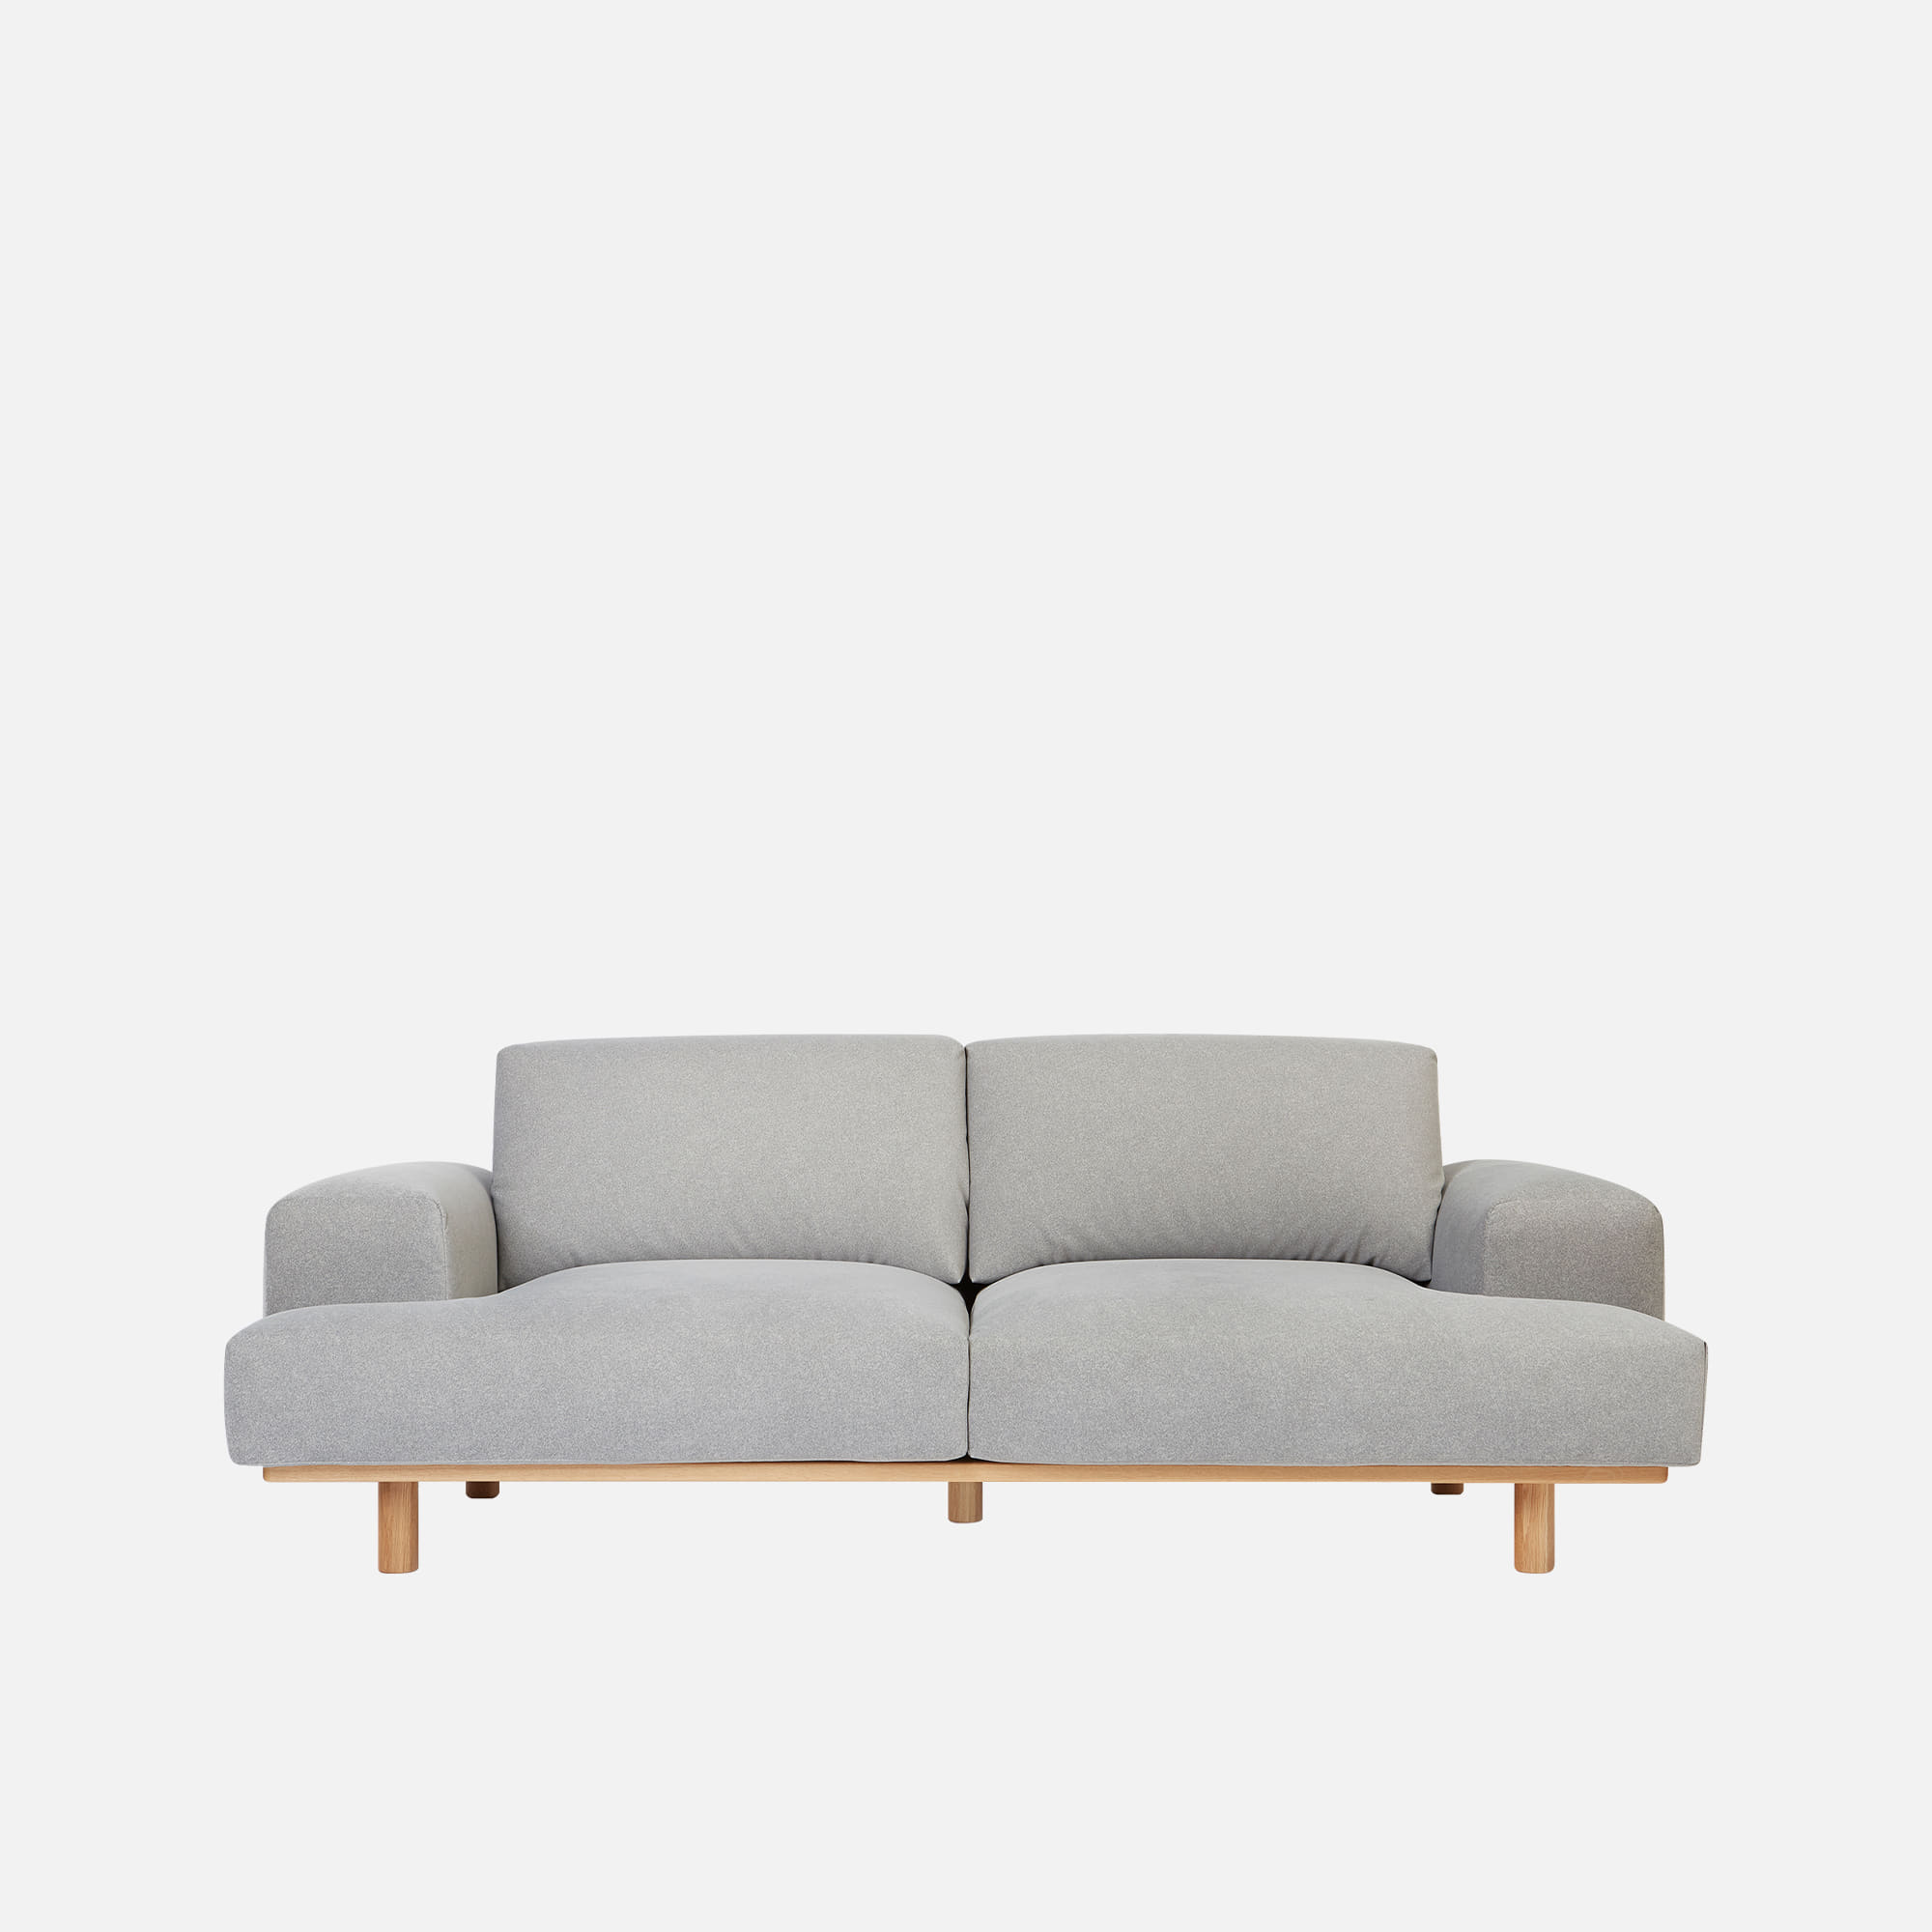 [얼리버드] Soft 2 unit Sofa